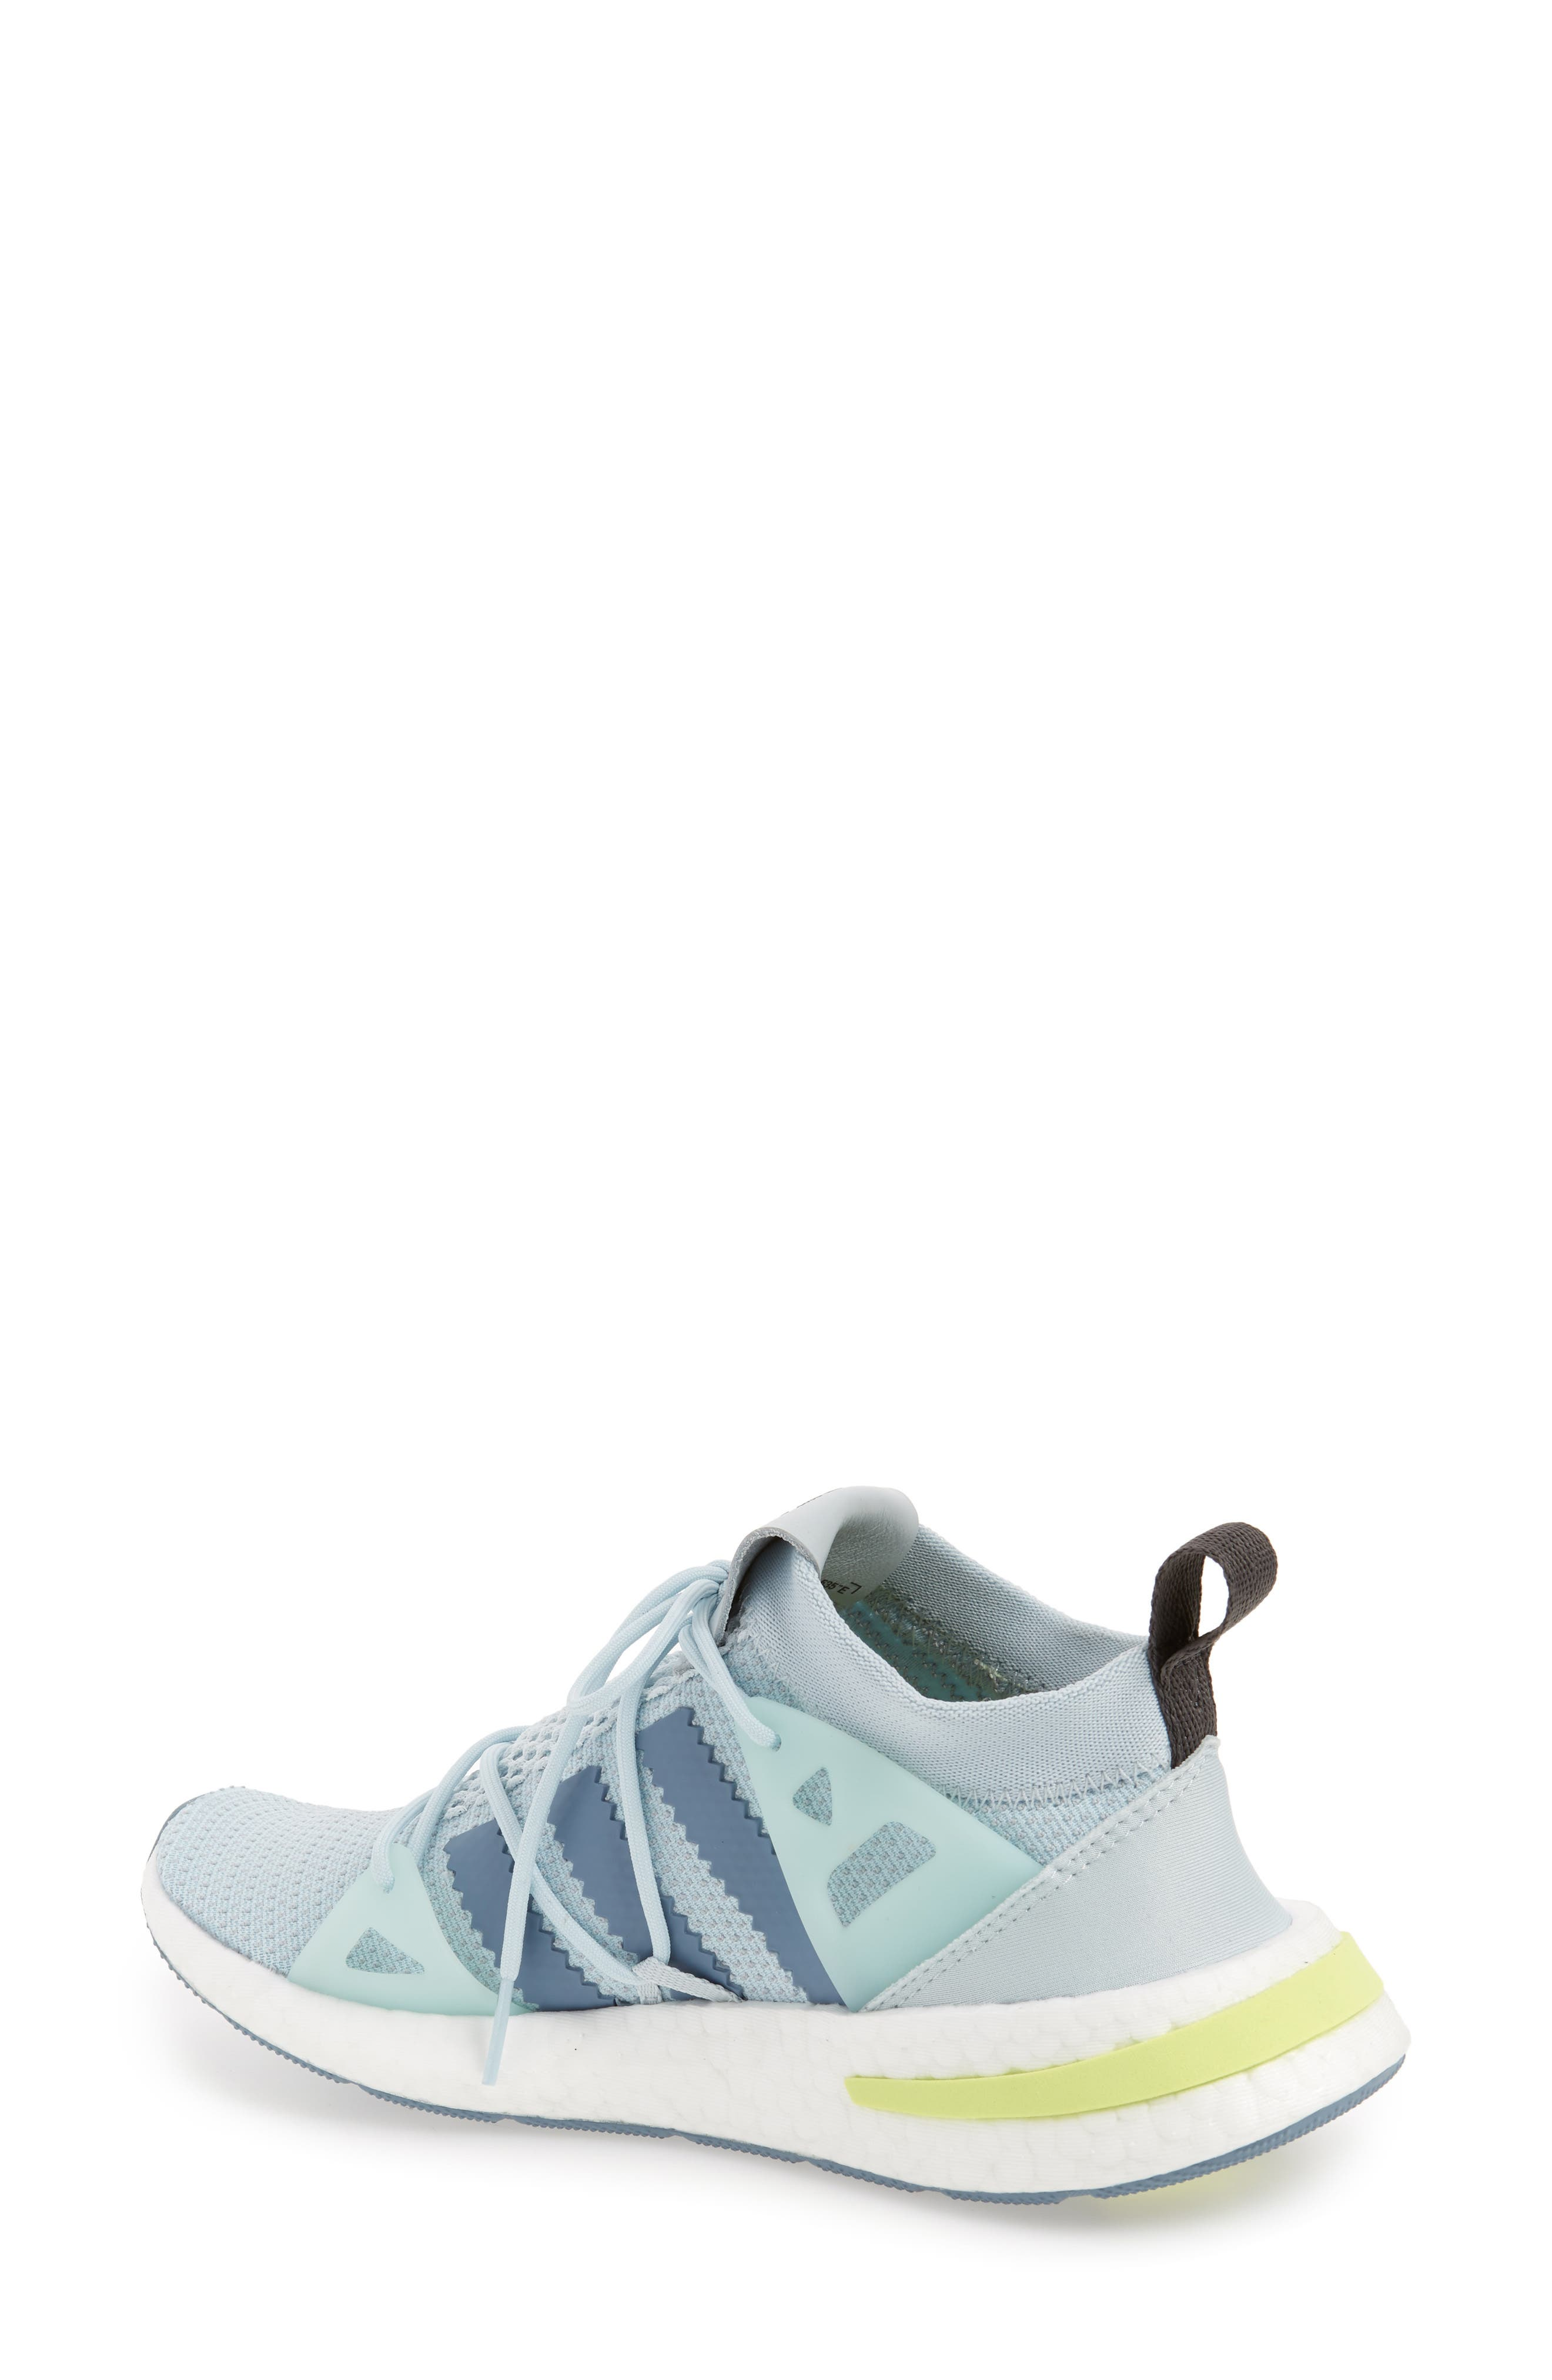 Arkyn Sneaker,                             Alternate thumbnail 2, color,                             453